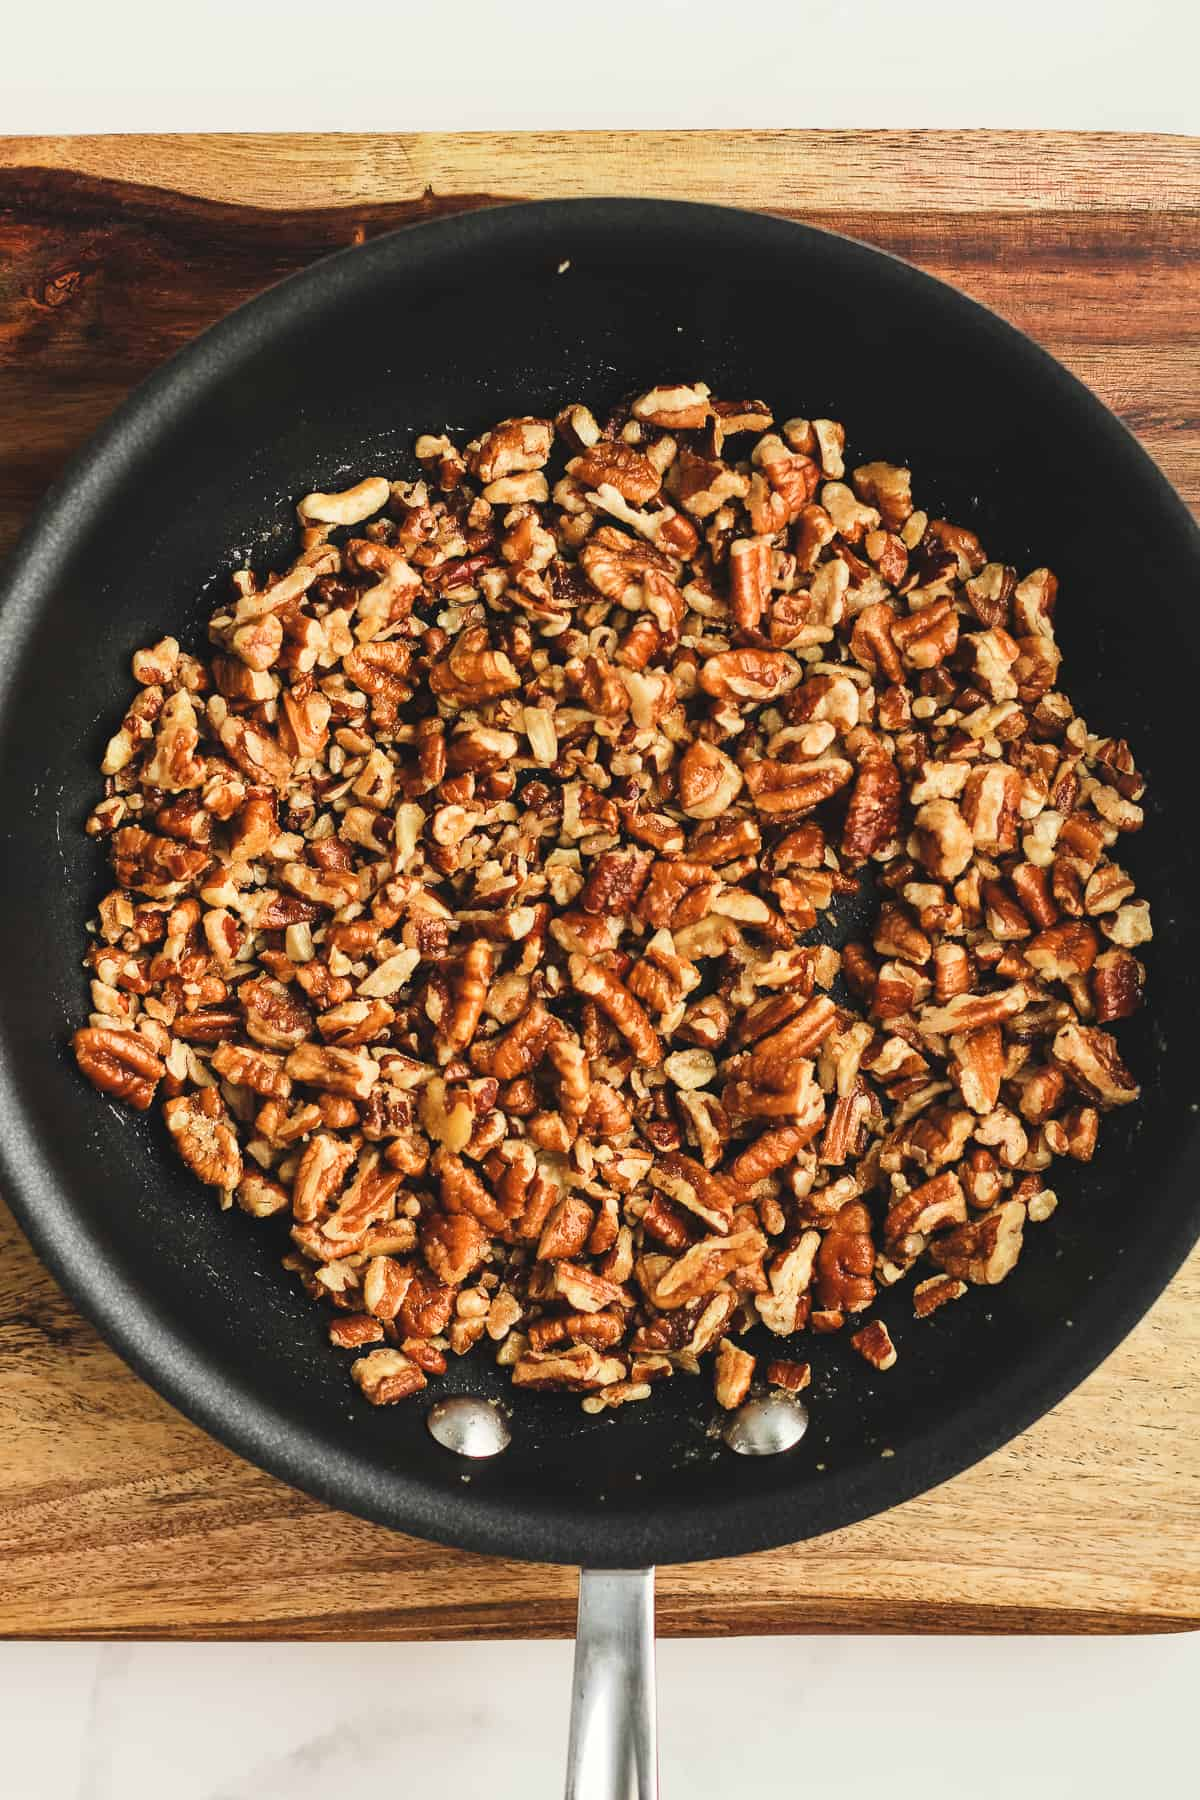 A skillet of chopped pecans.